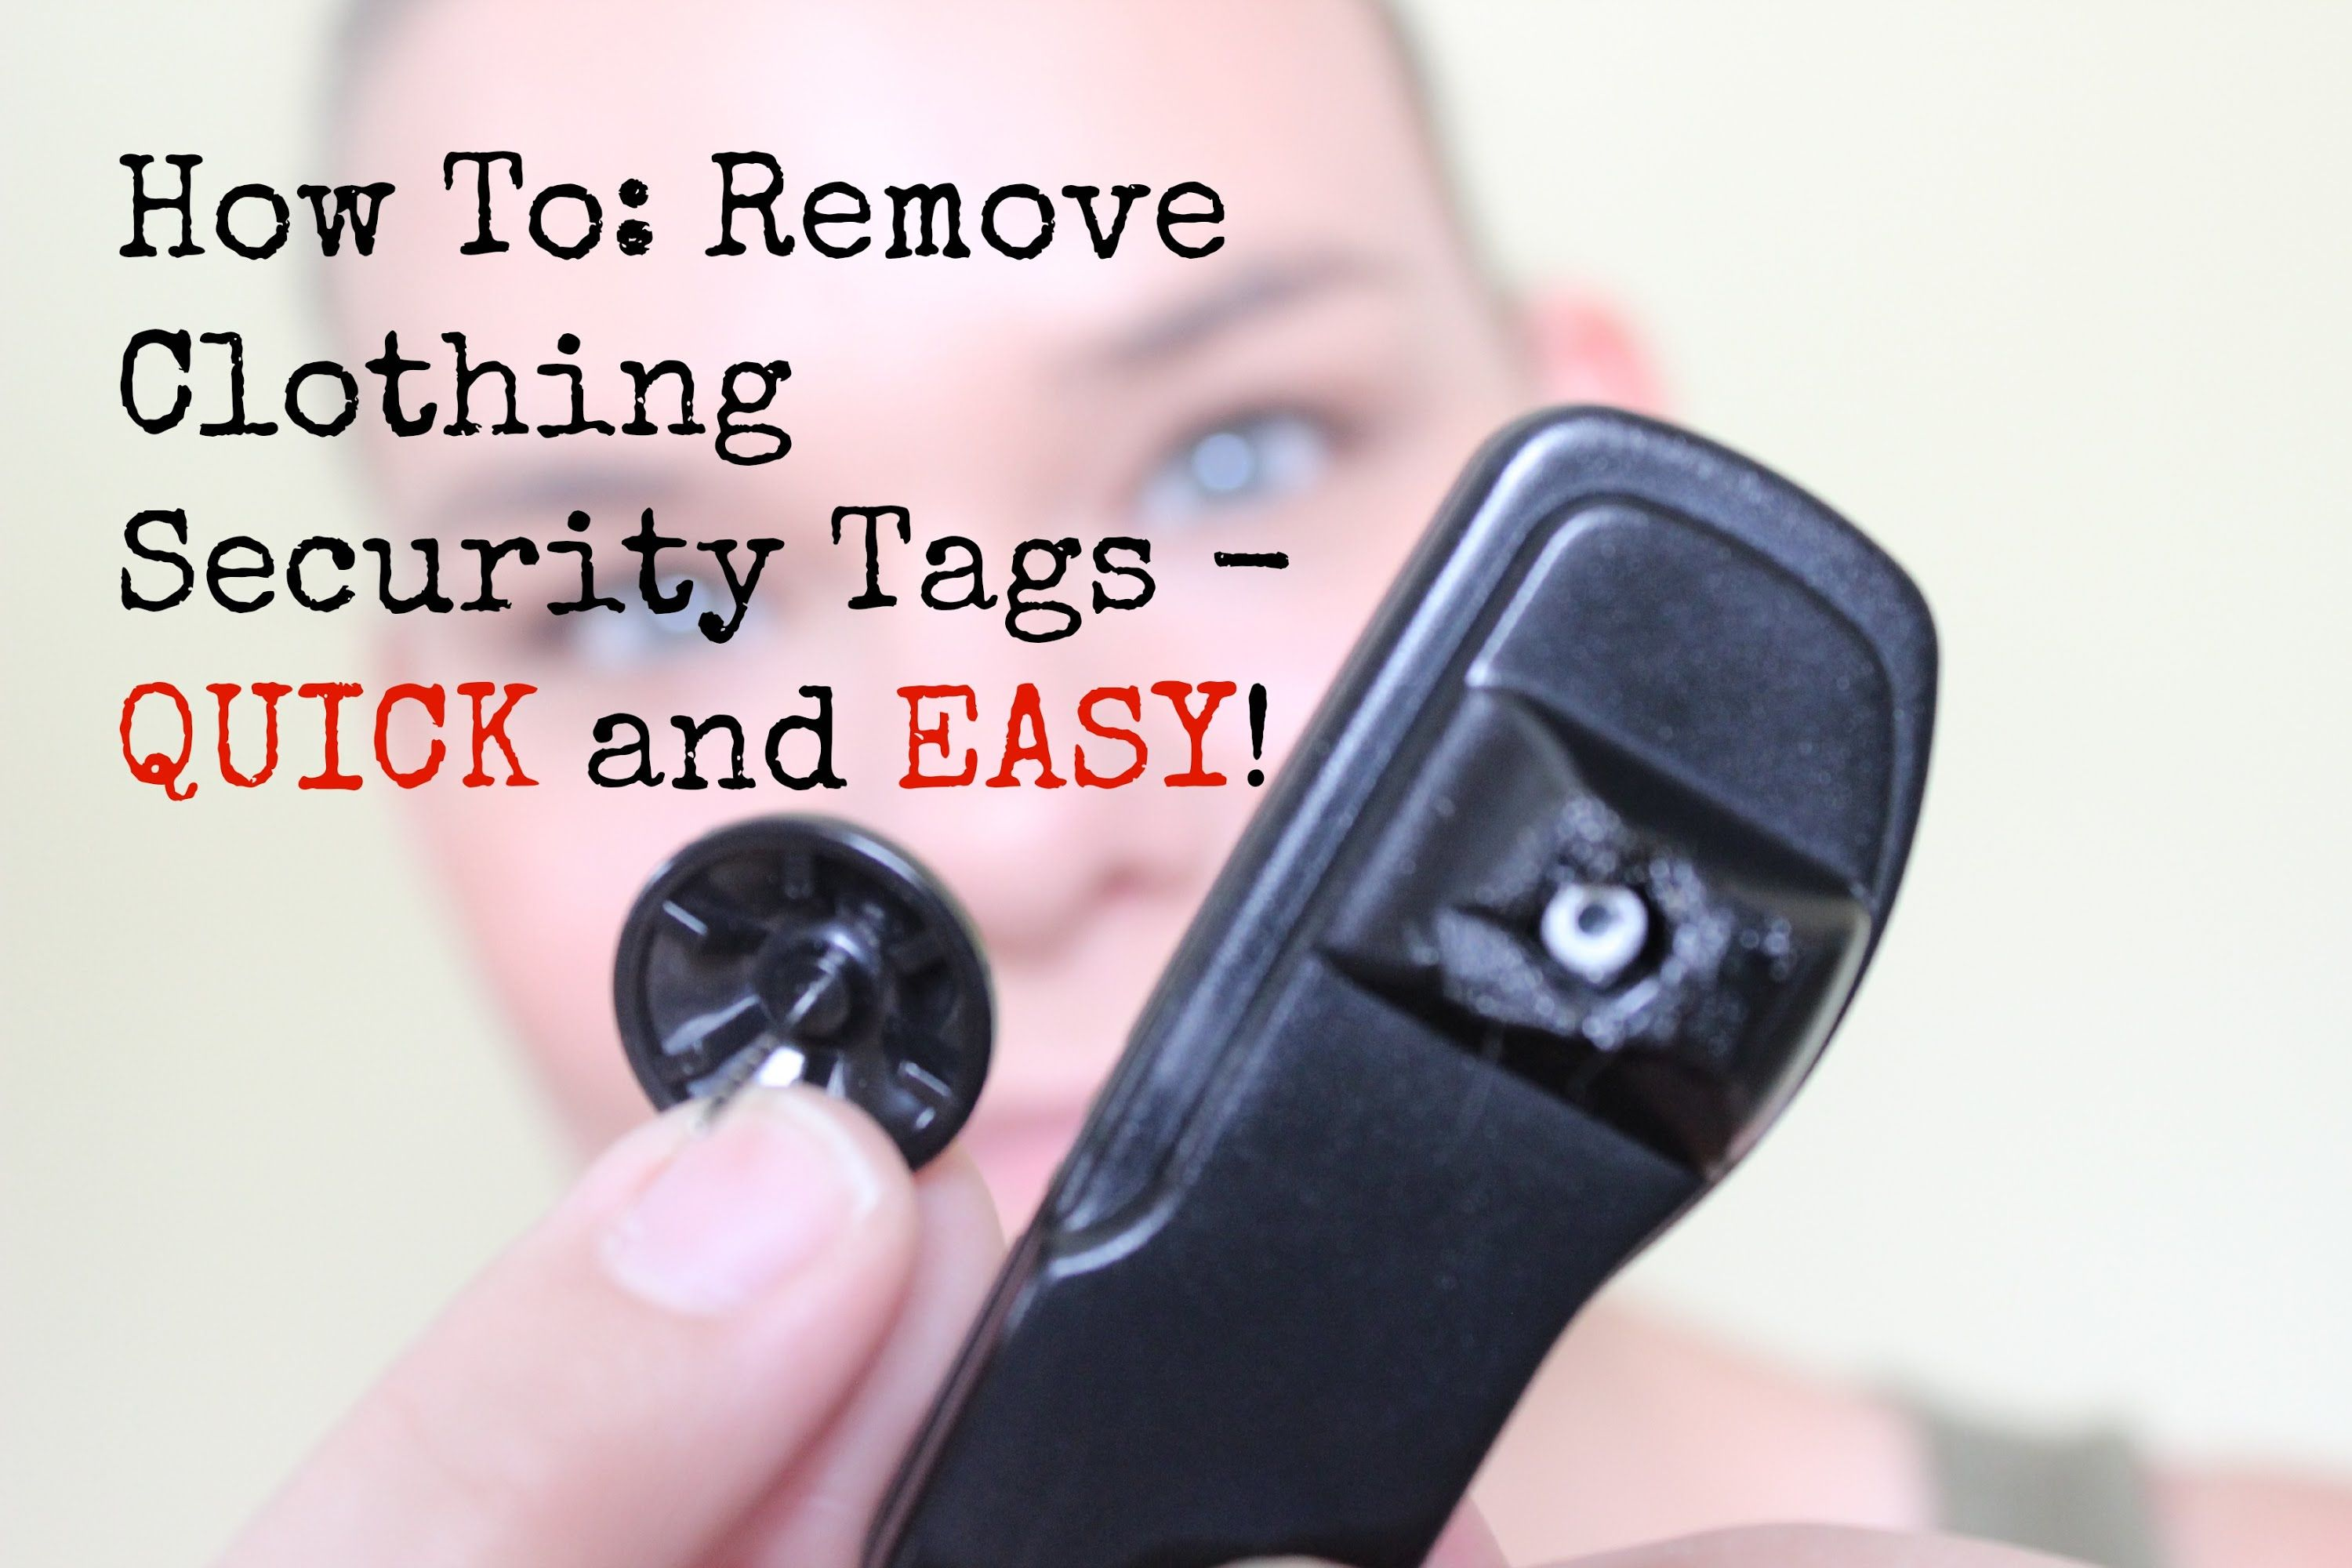 How to remove a security tag from clothing quick and